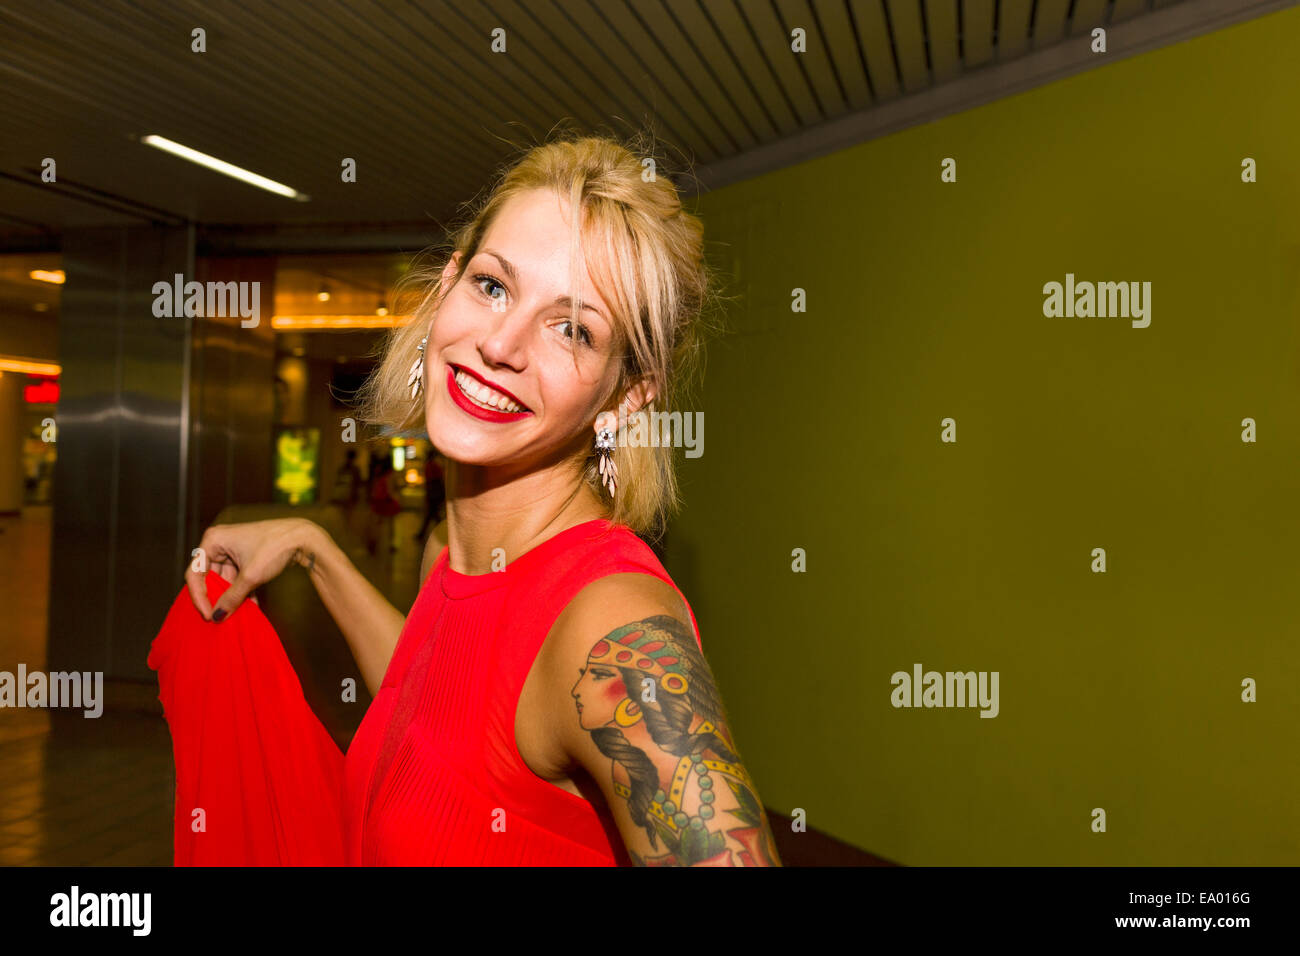 Portrait of young woman wearing red dress in subway station Stock Photo